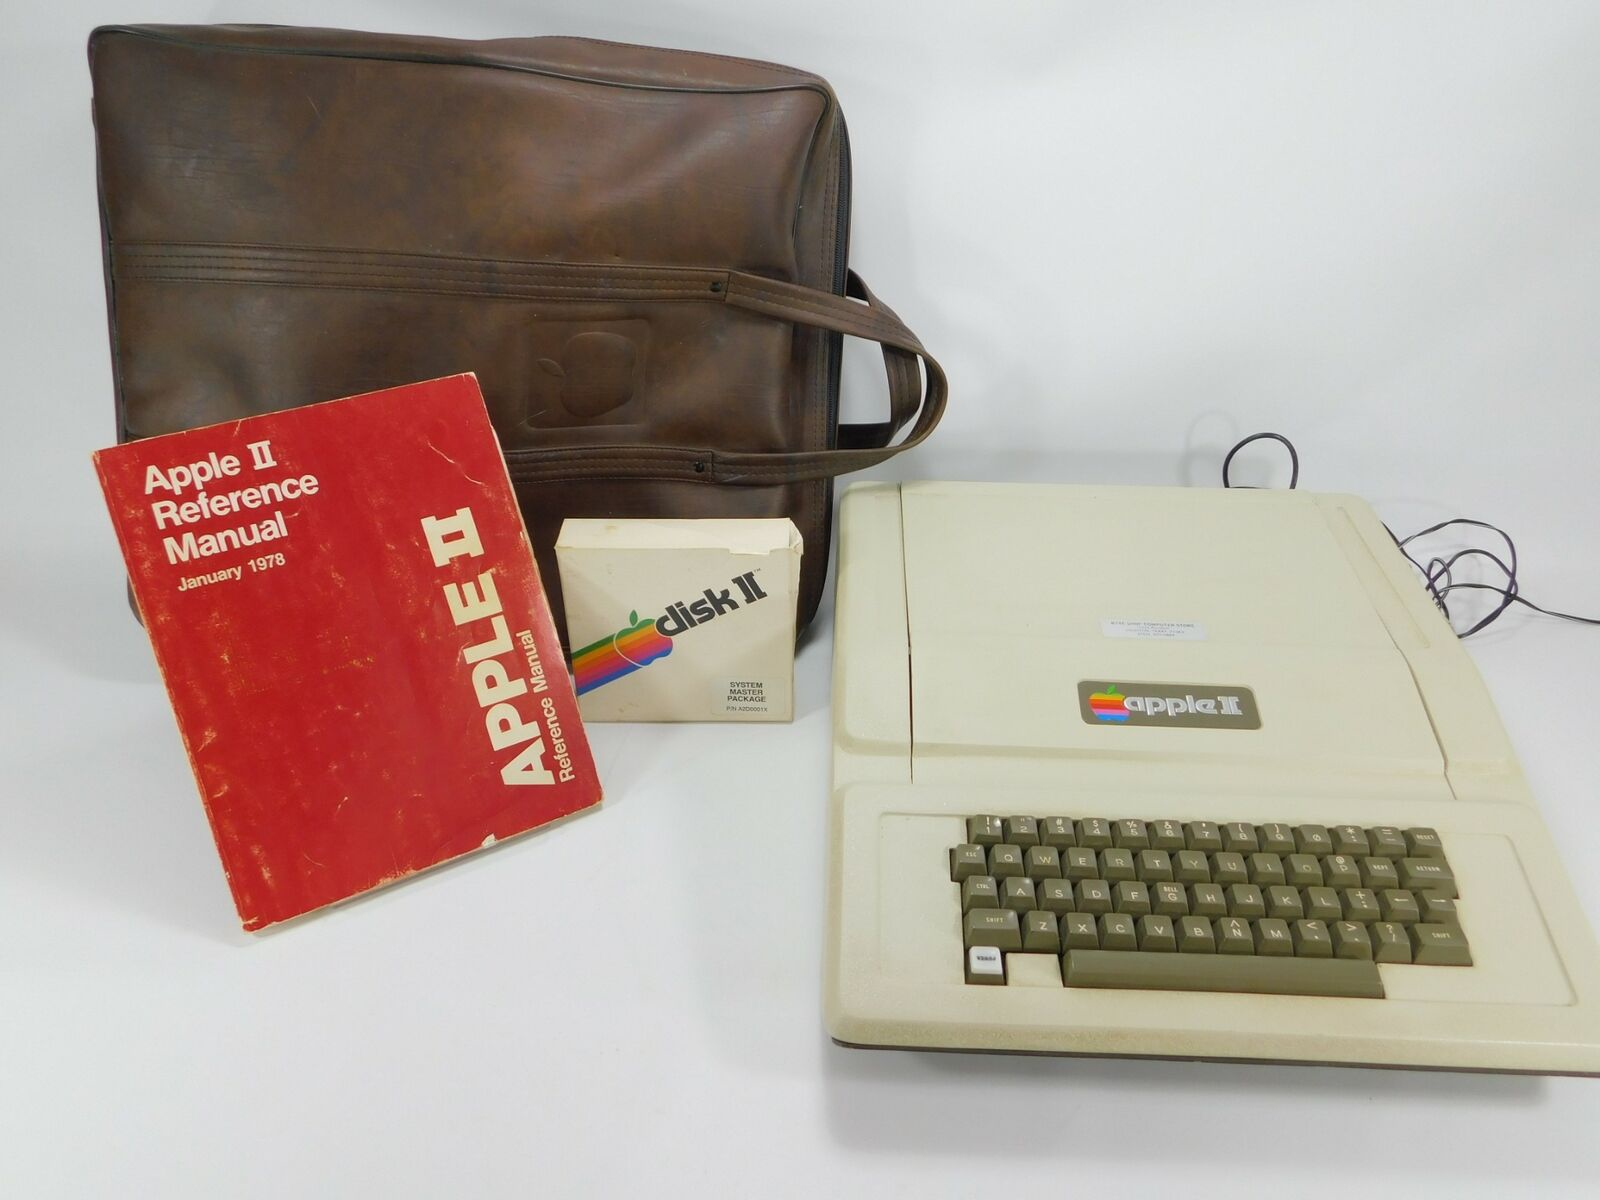 Ventless Rev 0 Apple II | Applefritter